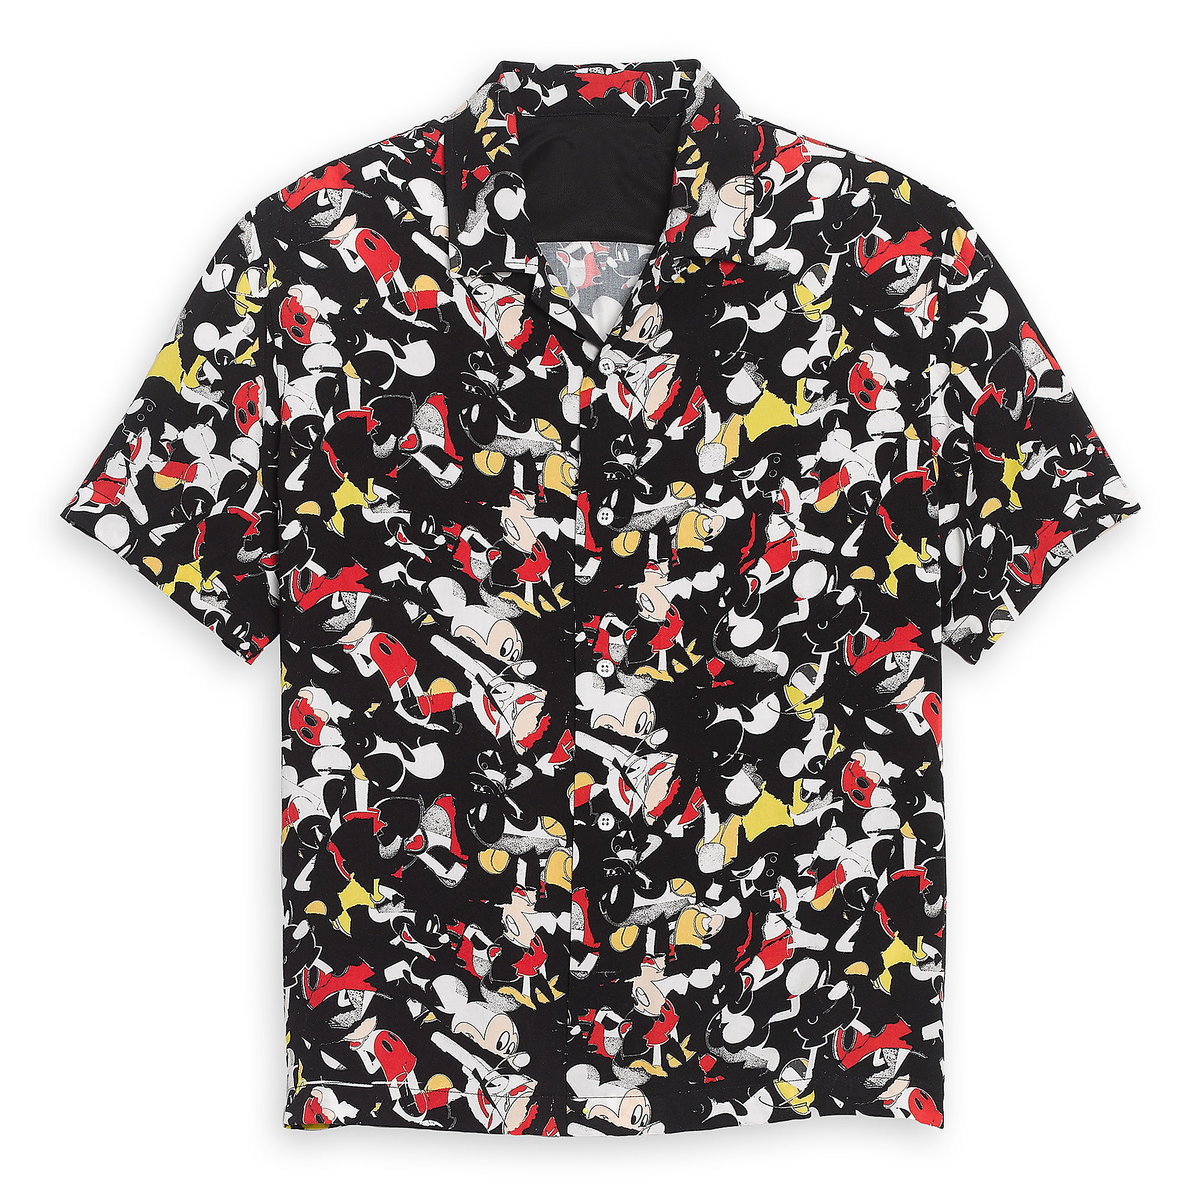 6fc336727 Product Image of Mickey Mouse Bowling Shirt for Adults by rag & bone # 1